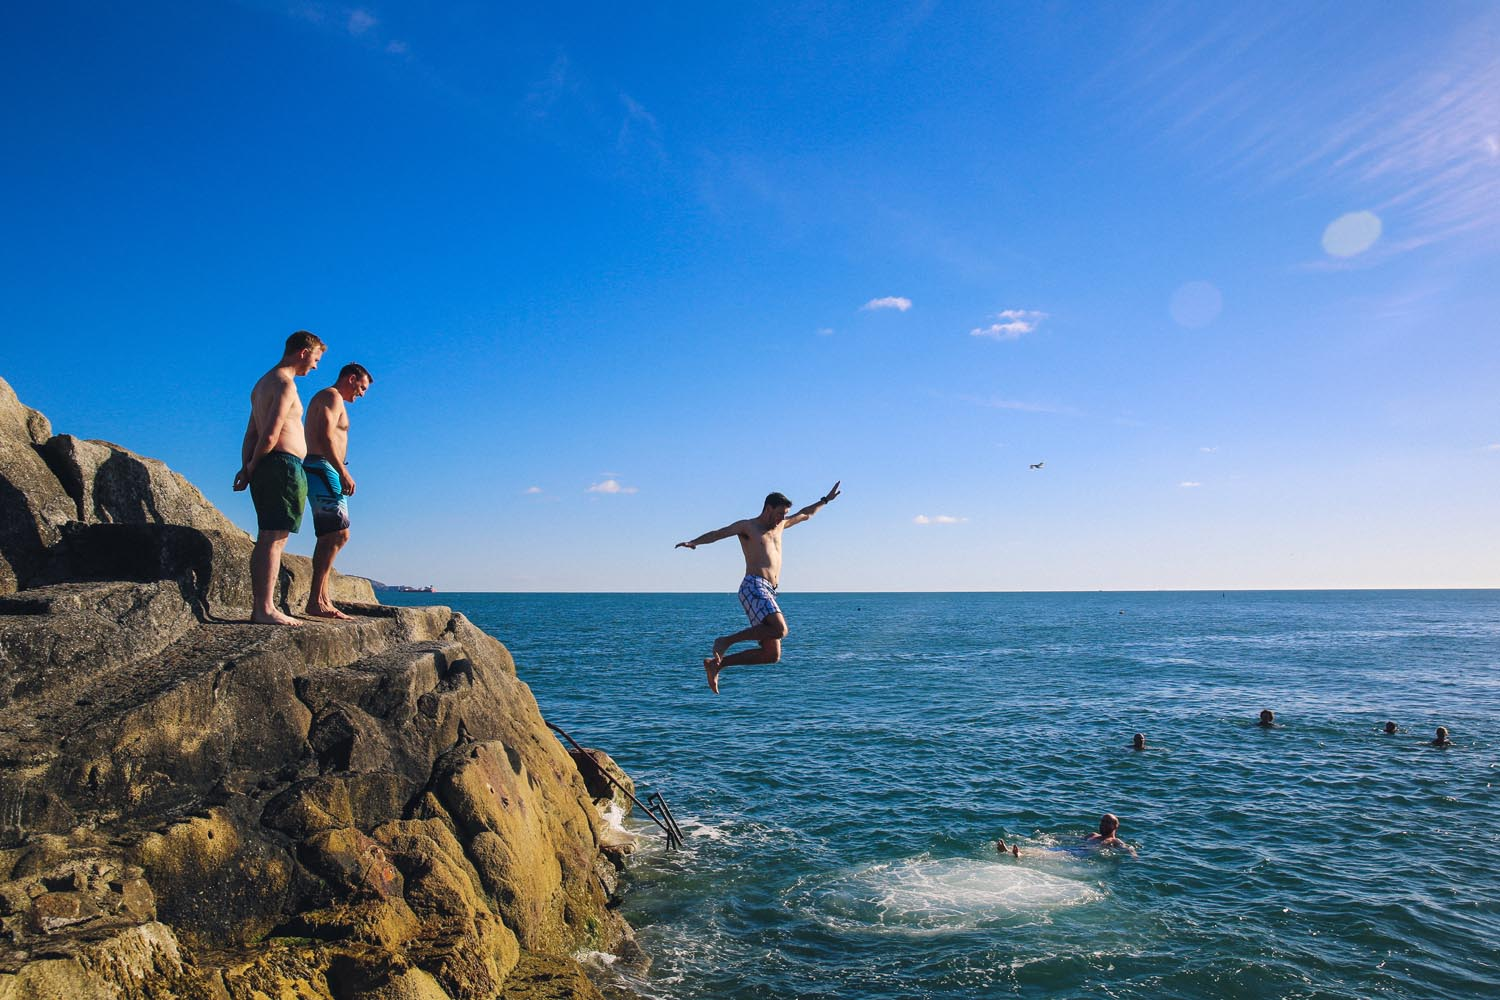 Jumping into the sea at the Forty Foot, Dublin